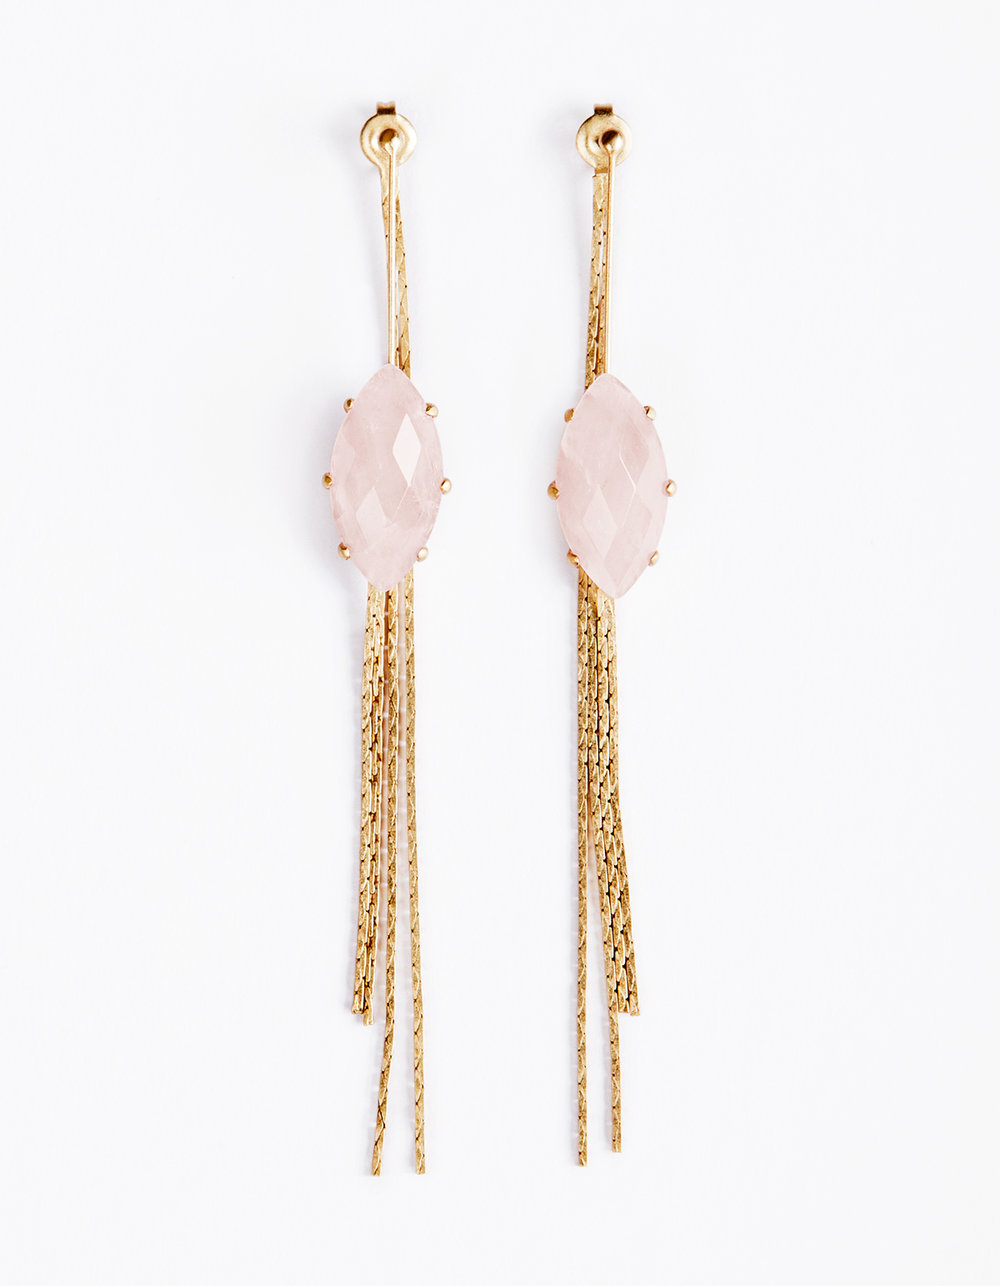 LEDA EARRINGS - The simplistic Leda earrings, like a modern artist's sketch, are composed by a play on juxtaposed lines and forms. While the featured hand-cut rose quartz gemstone aims to be the focus, the subtle detail of delicate chain draping from the back makes up for a dazzling element, to make these the perfect go-to pair for an every day and night statement. 18k antiqued gold plated, rose quartz measures 3.5 inches l x 10mm w. Natural gemstone's inclusions may differ from piece to piece to allow for a signature one-of-a-kind aesthetic. Made with love.